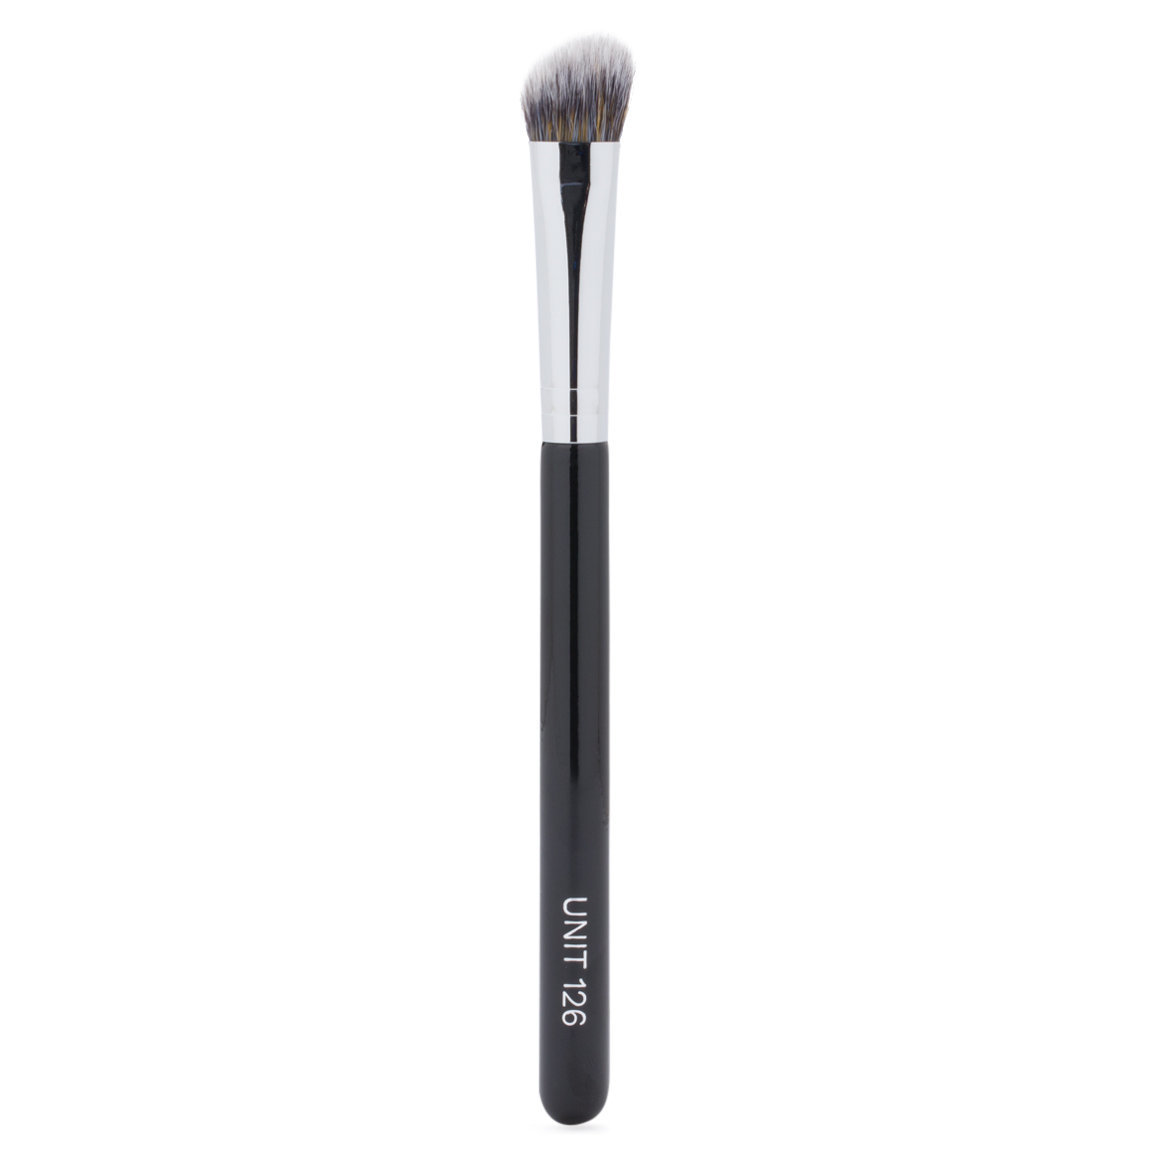 UNITS UNIT 126 Eye Brush alternative view 1 - product swatch.